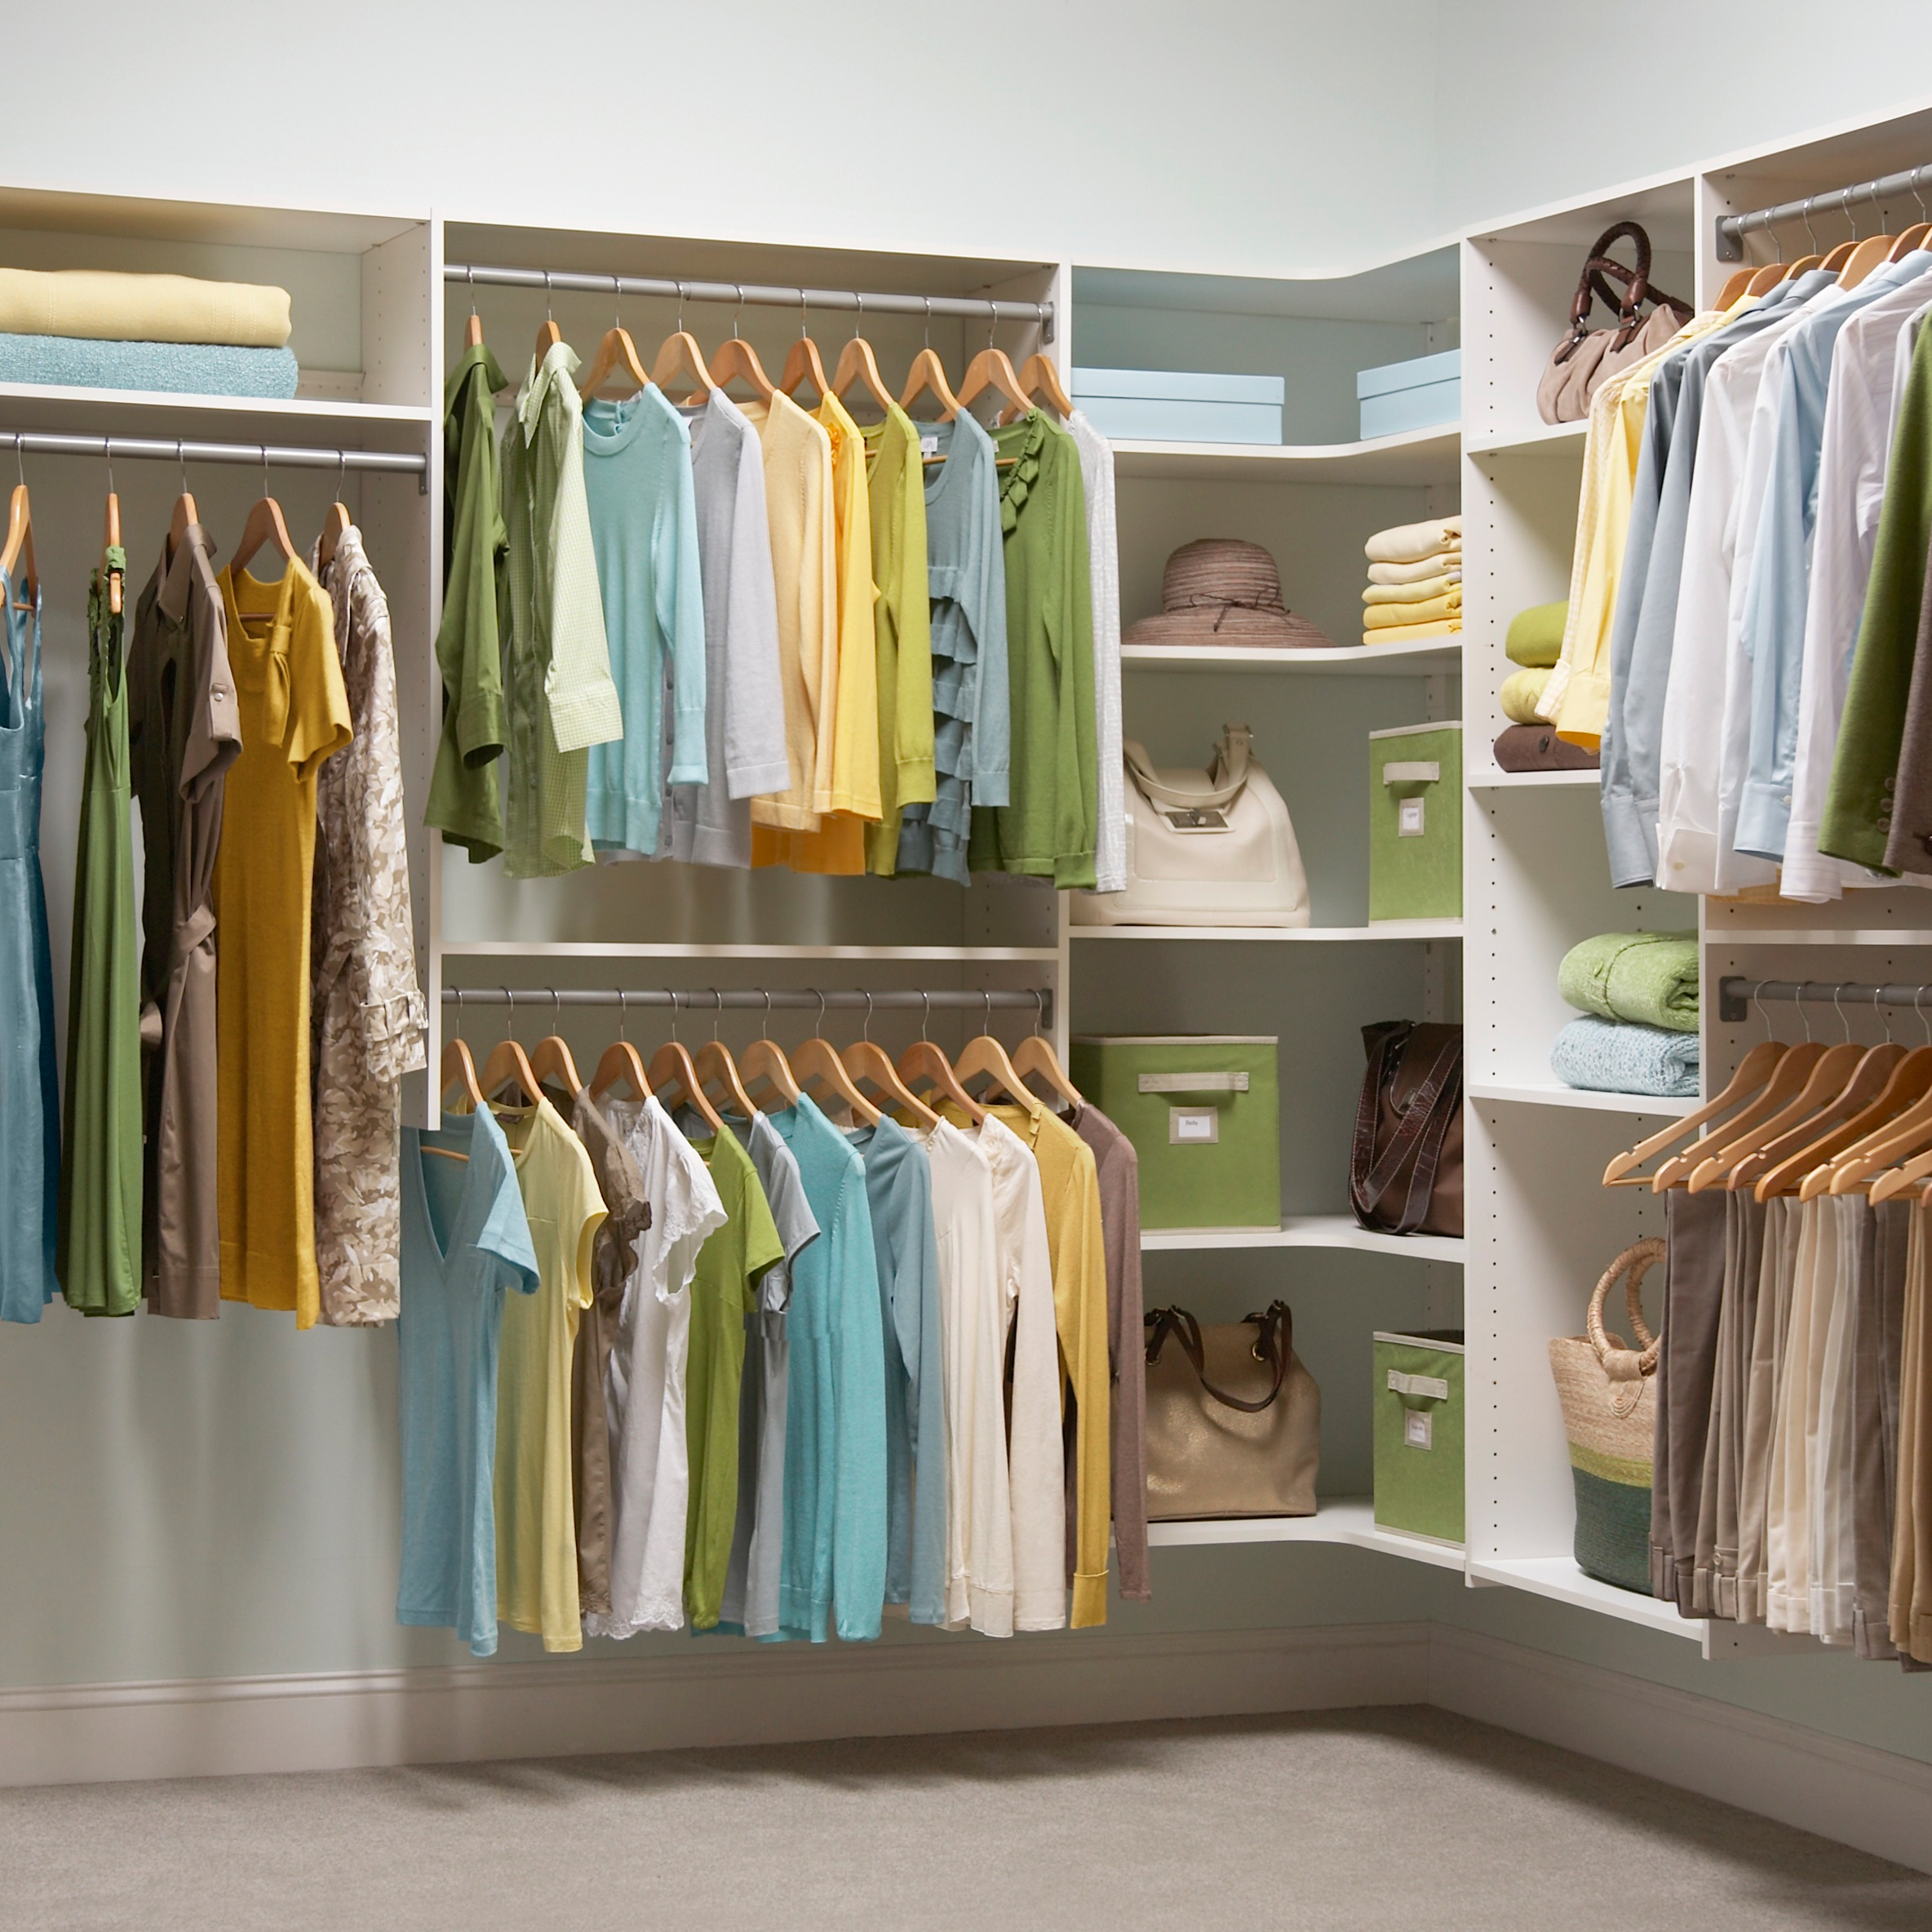 Closet Organization Made Simple by Martha Stewart Living at The